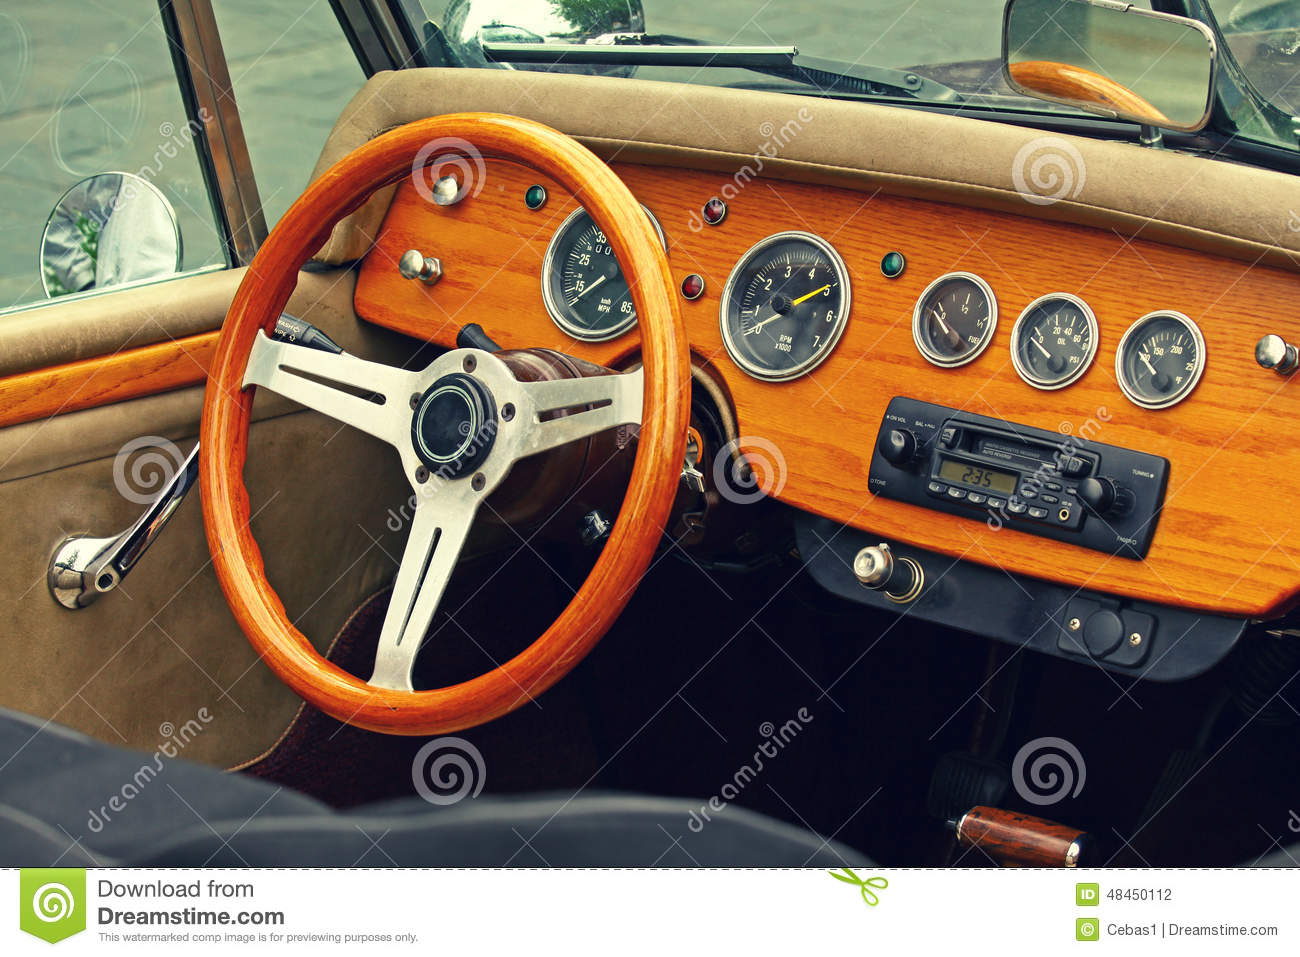 vintage car interior stock photo image of automobile 48450112. Black Bedroom Furniture Sets. Home Design Ideas